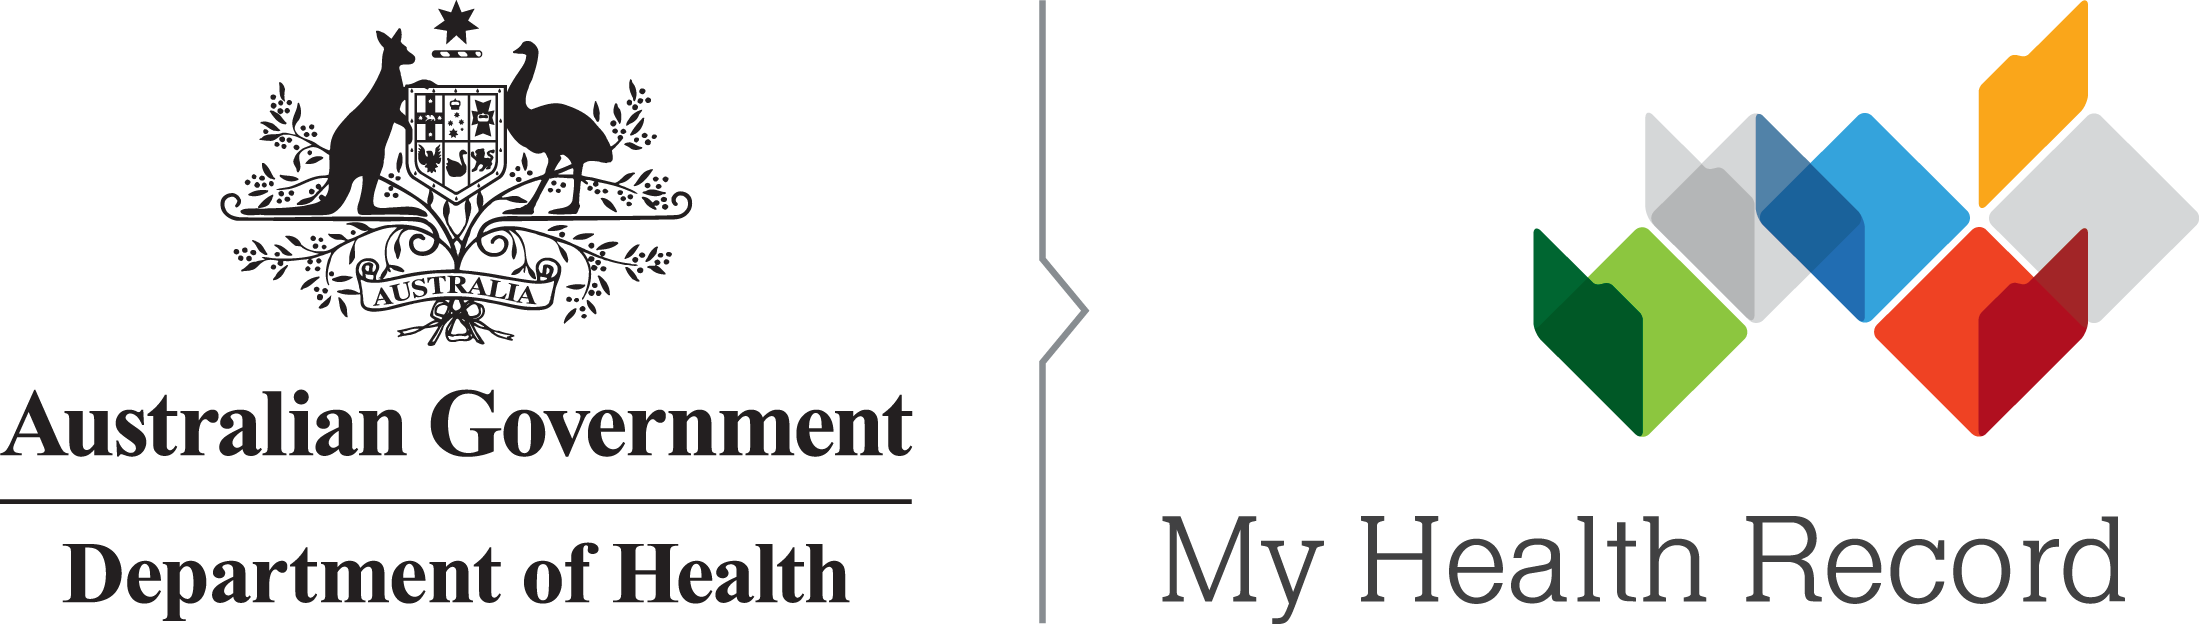 My Health Record inline banner